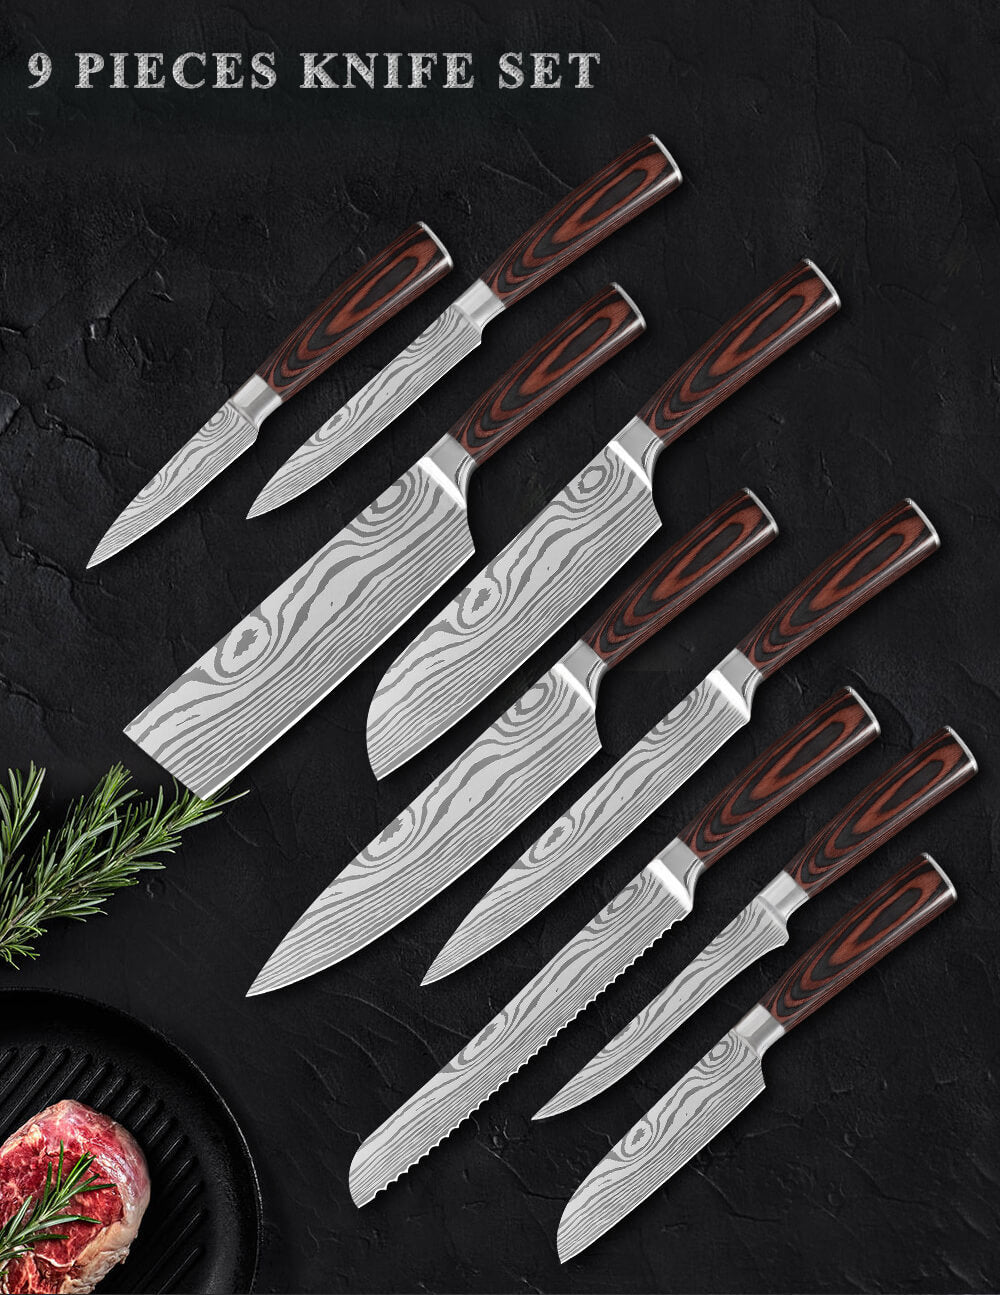 9-Piece Chef Knife Set 7CR17Mov Stainless Steel With Sheath